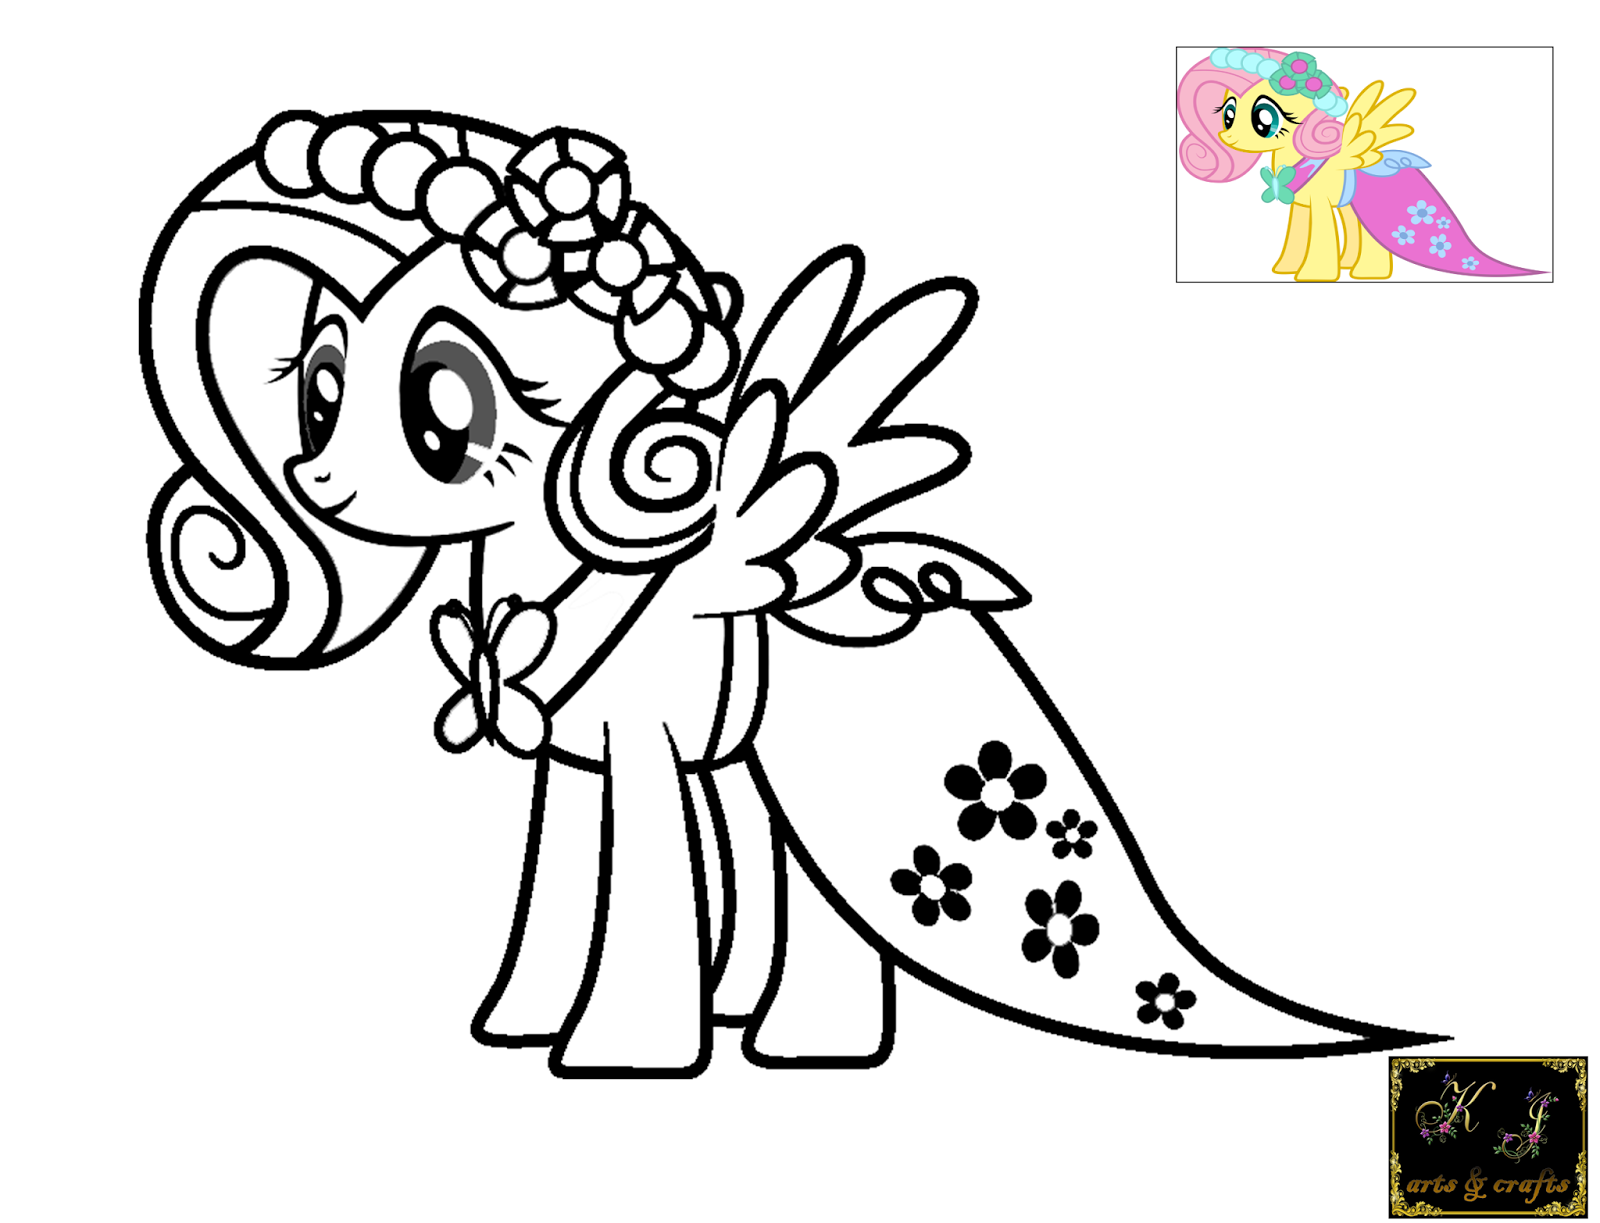 fluttershy coloring pages - My Little Pony Fluttershy Coloring Pages Memutihkan Kulit